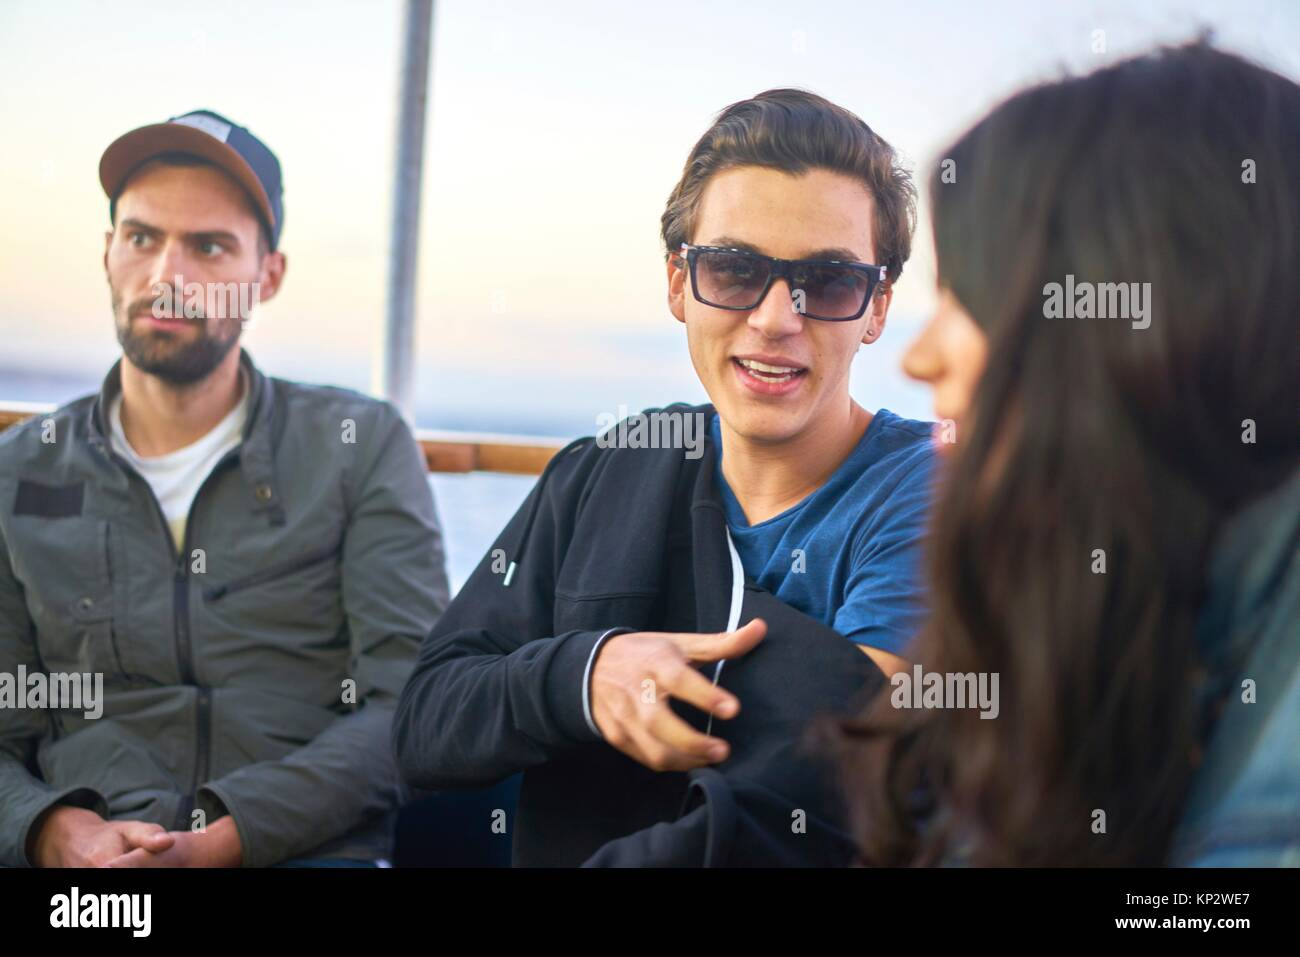 Young international people during conversation - Stock Image